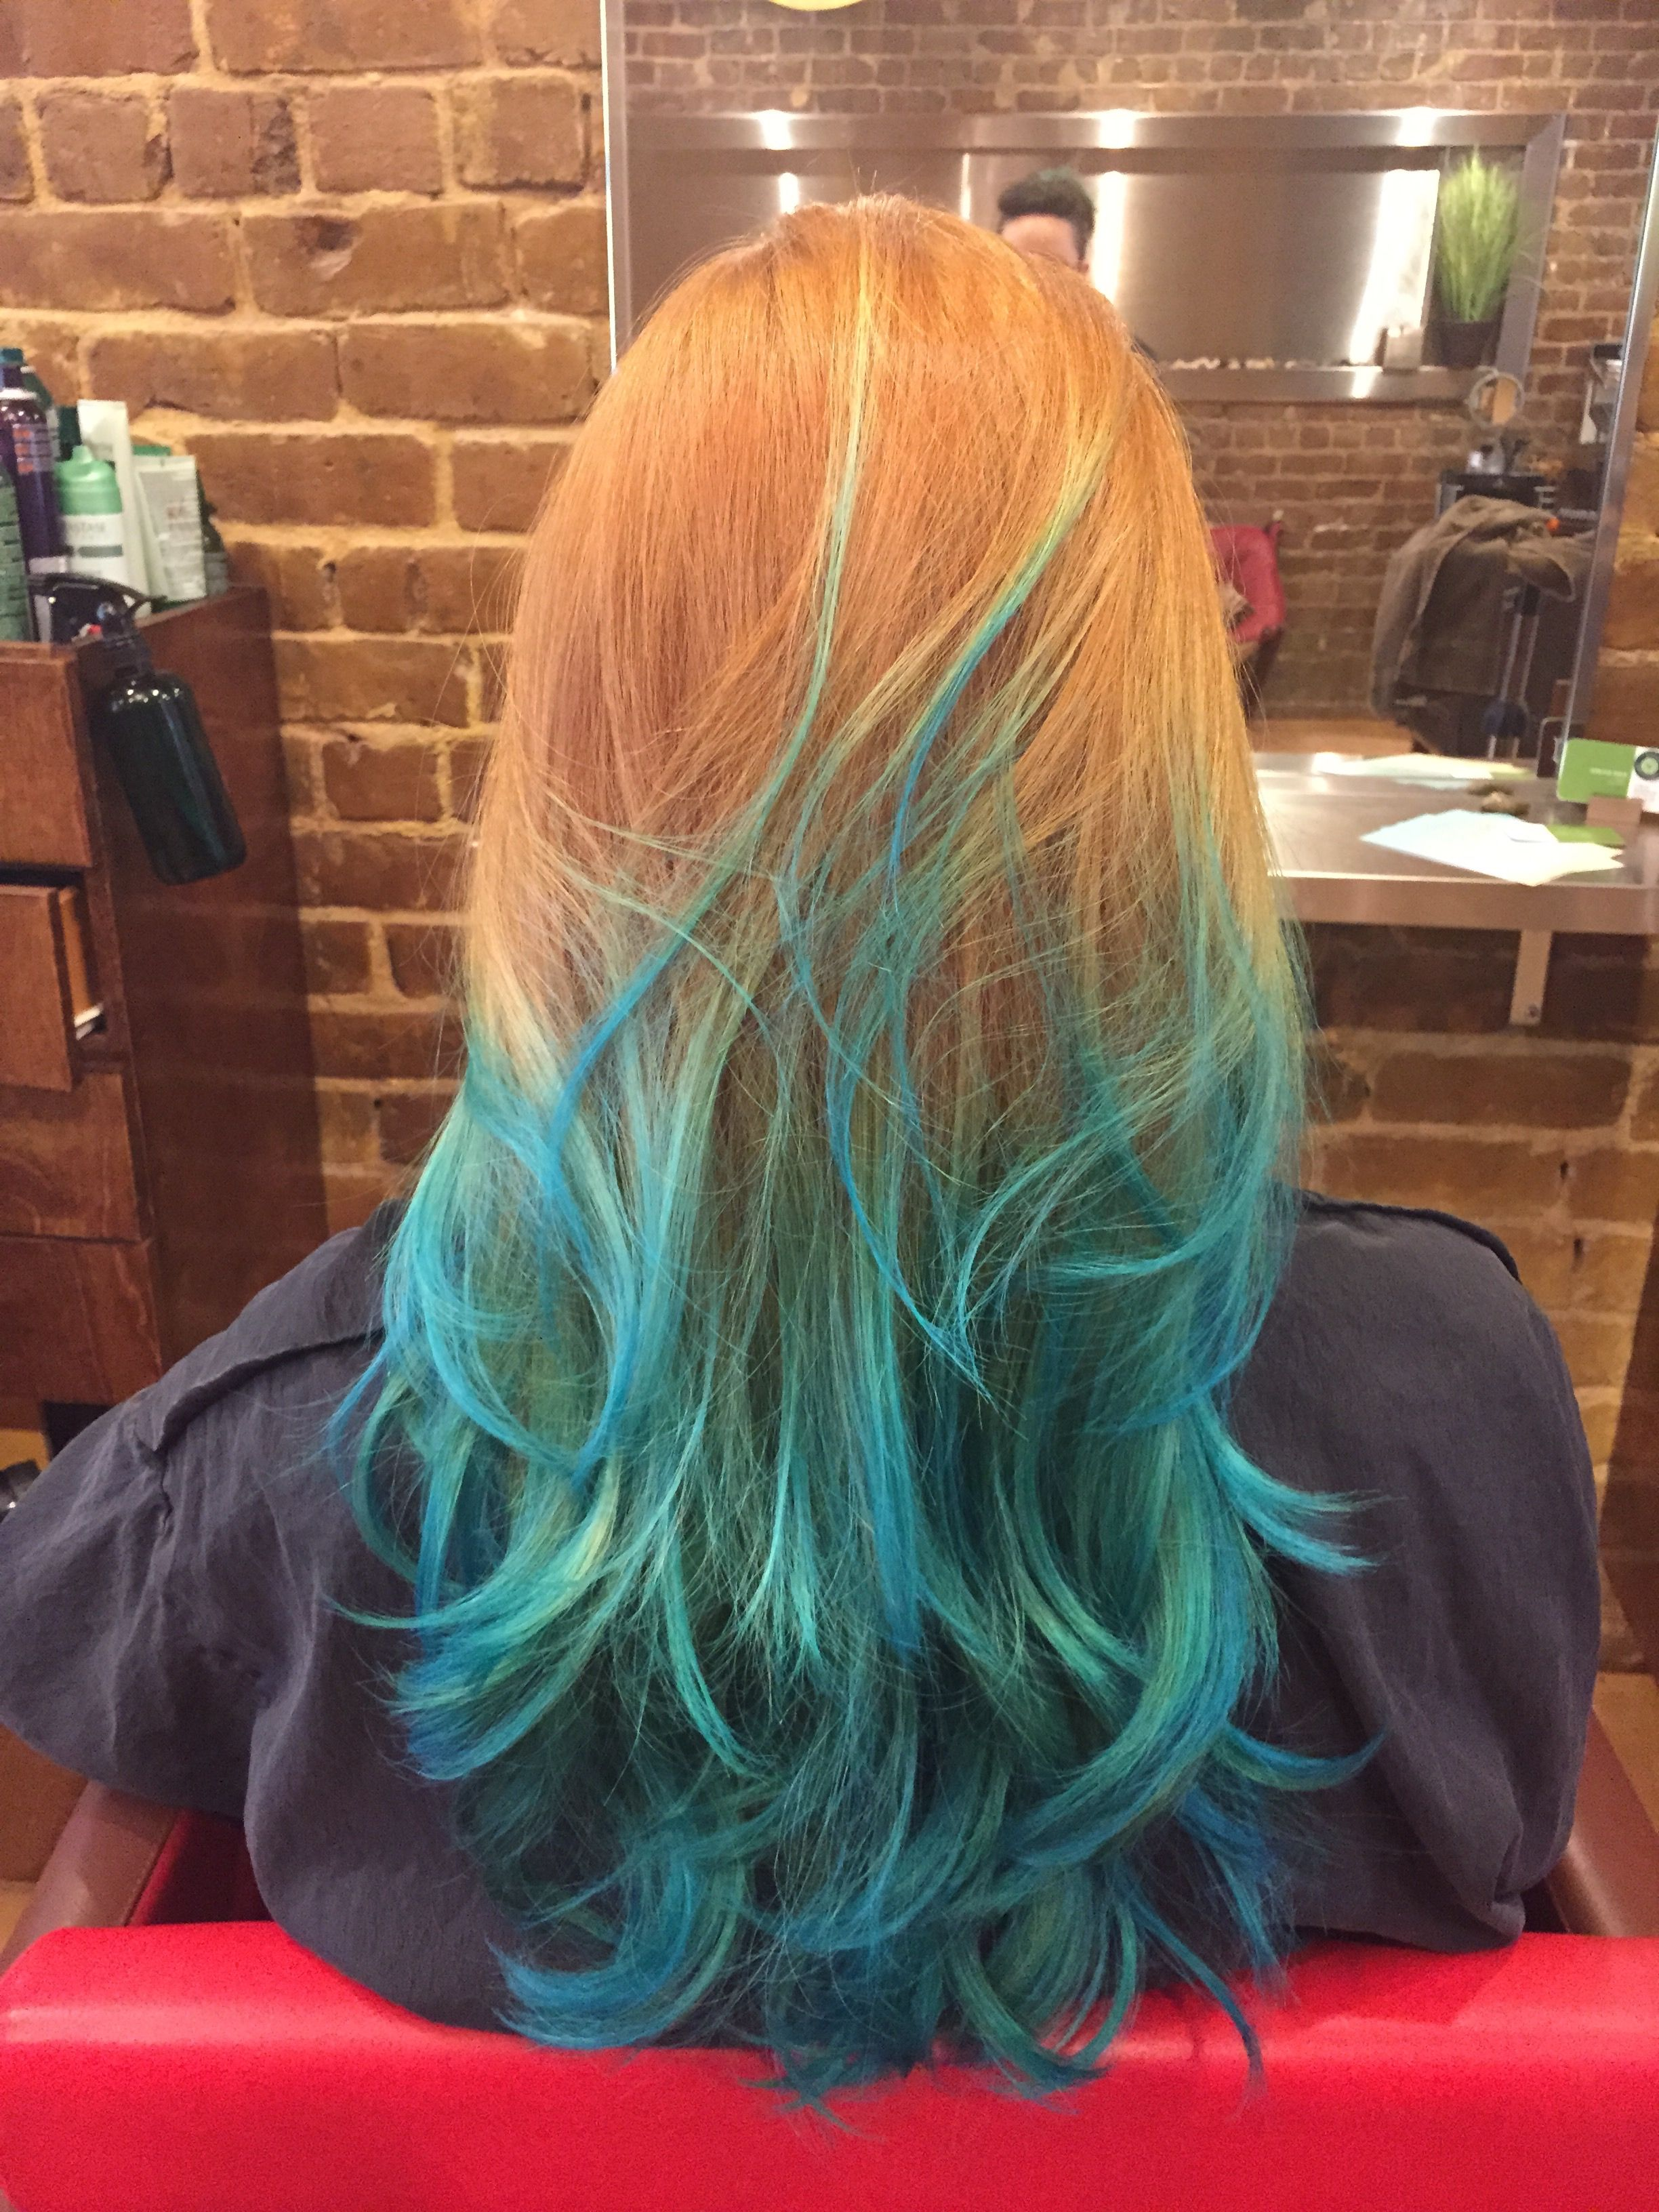 Natural Red Hair With Blue Ombre Hair Dye Tips Blue Ombre Hair